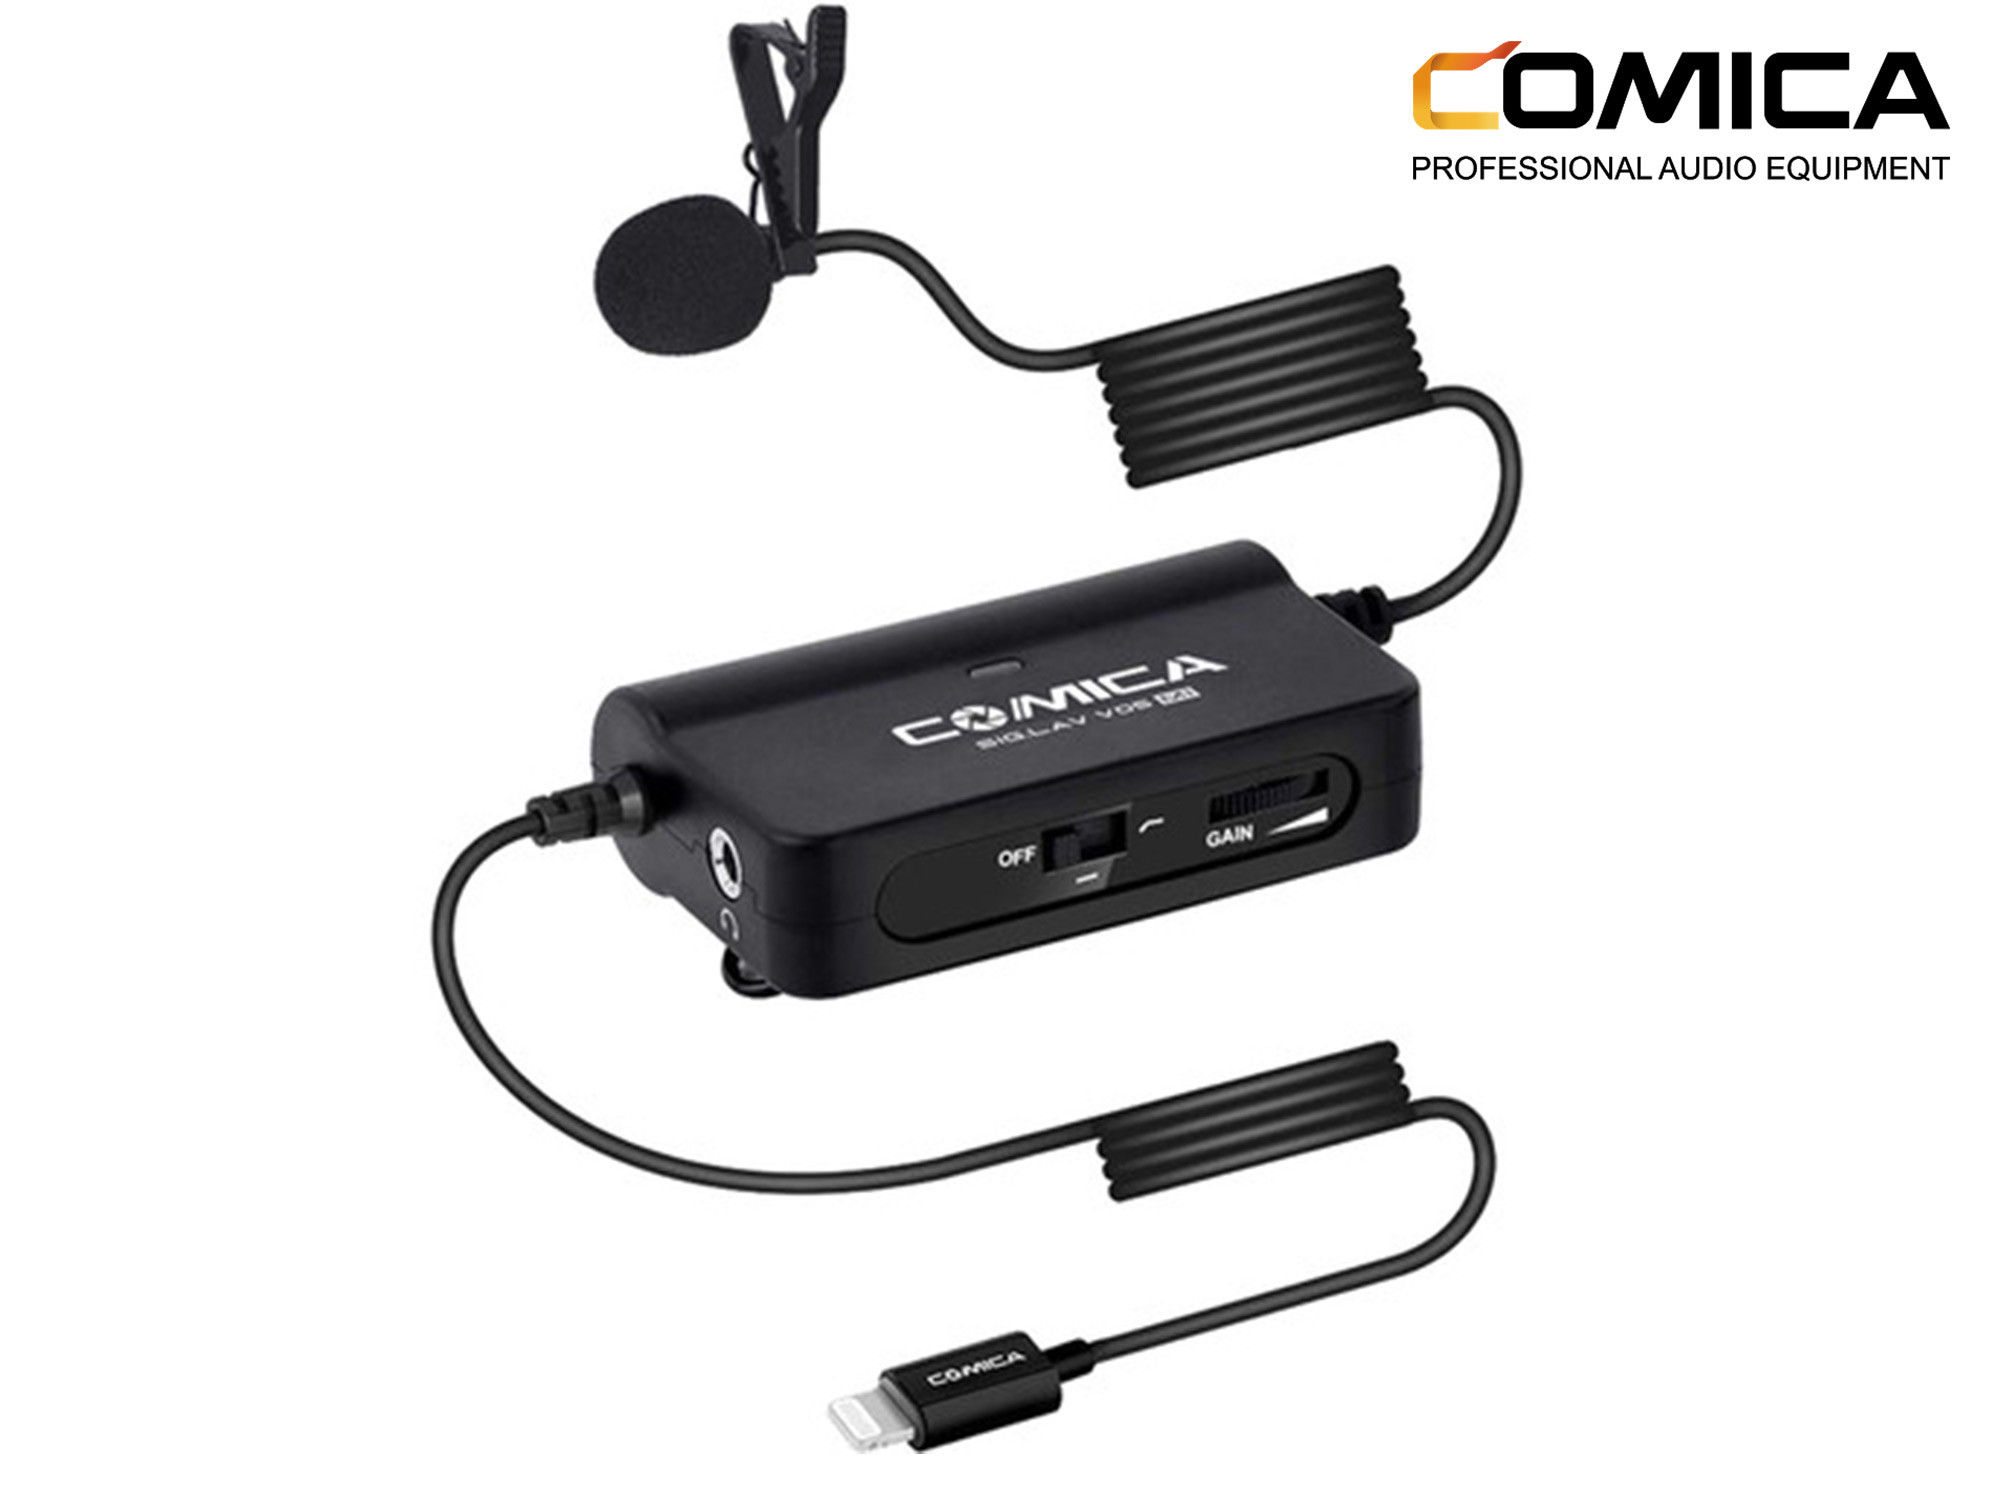 Comica Single Lavalier Microphone for iPhone with Lightning Interface